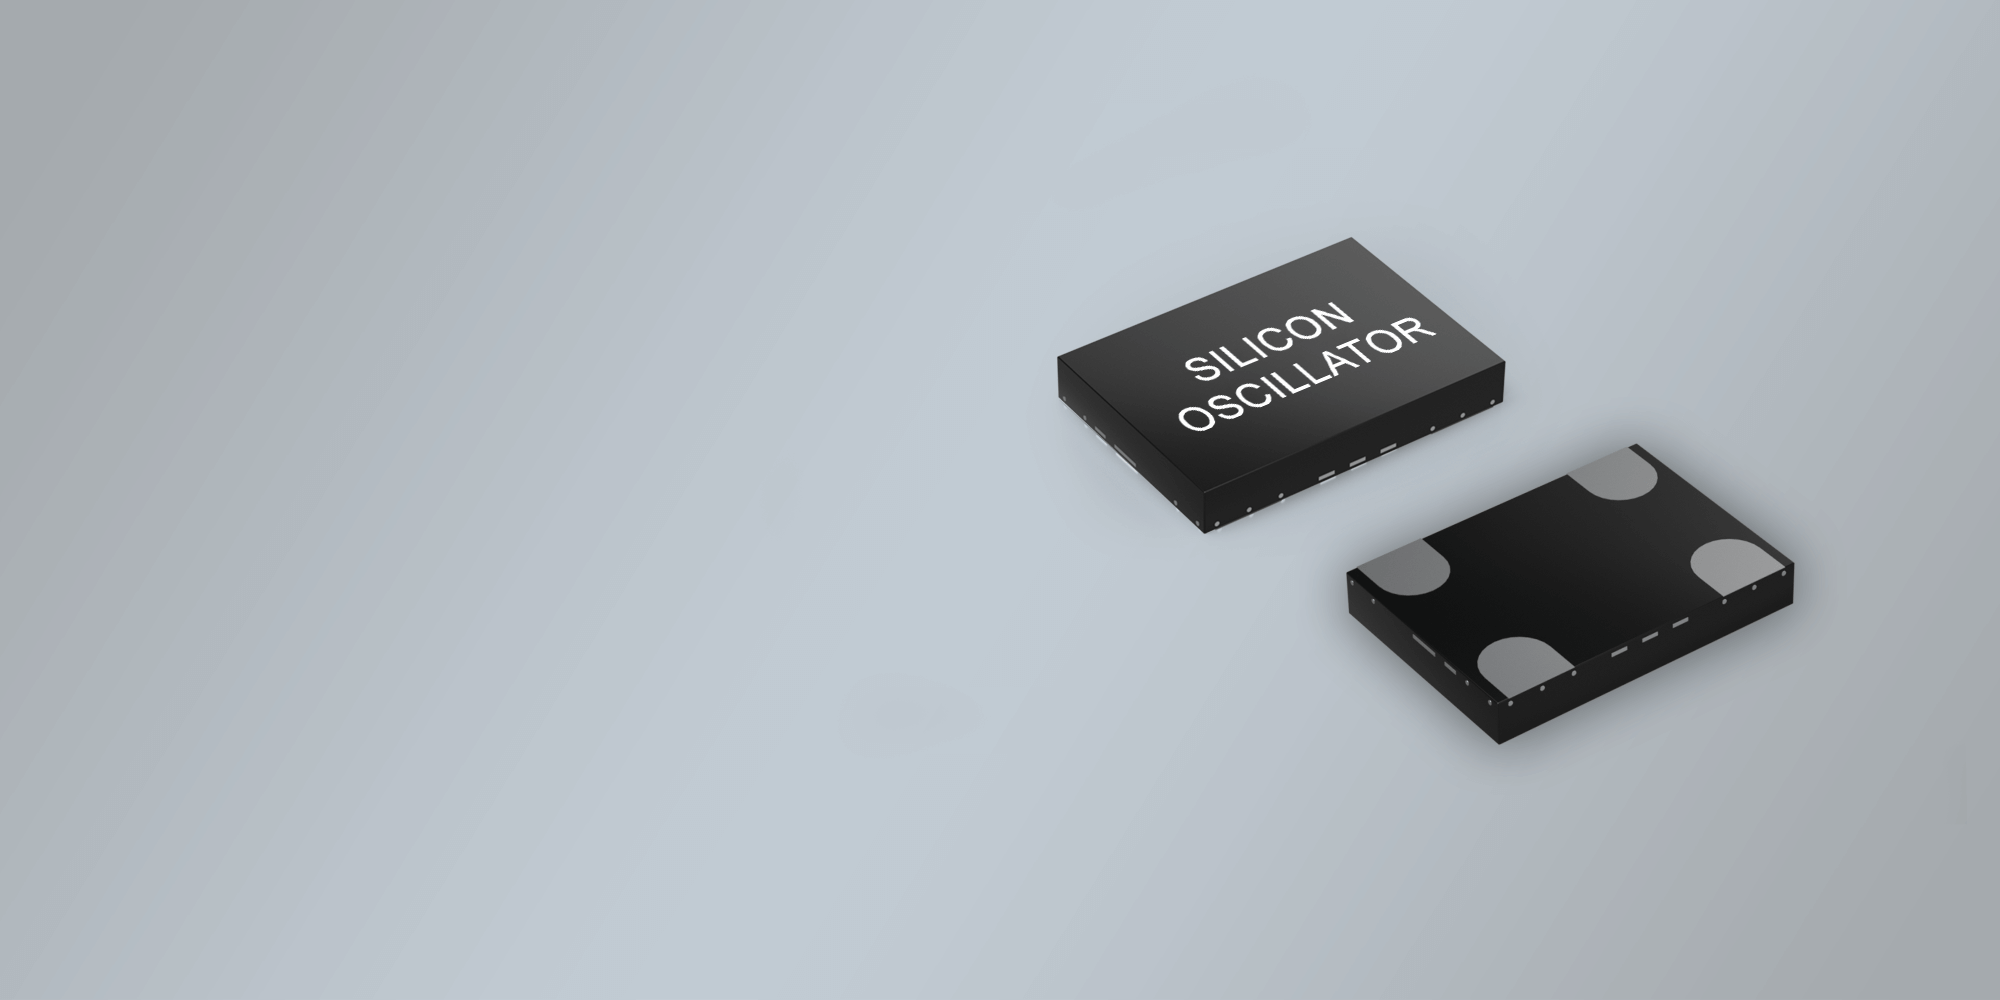 SMD ULTRA-LOW POWER 32.768 kHz HIGH PRECISION OSCILLATORS